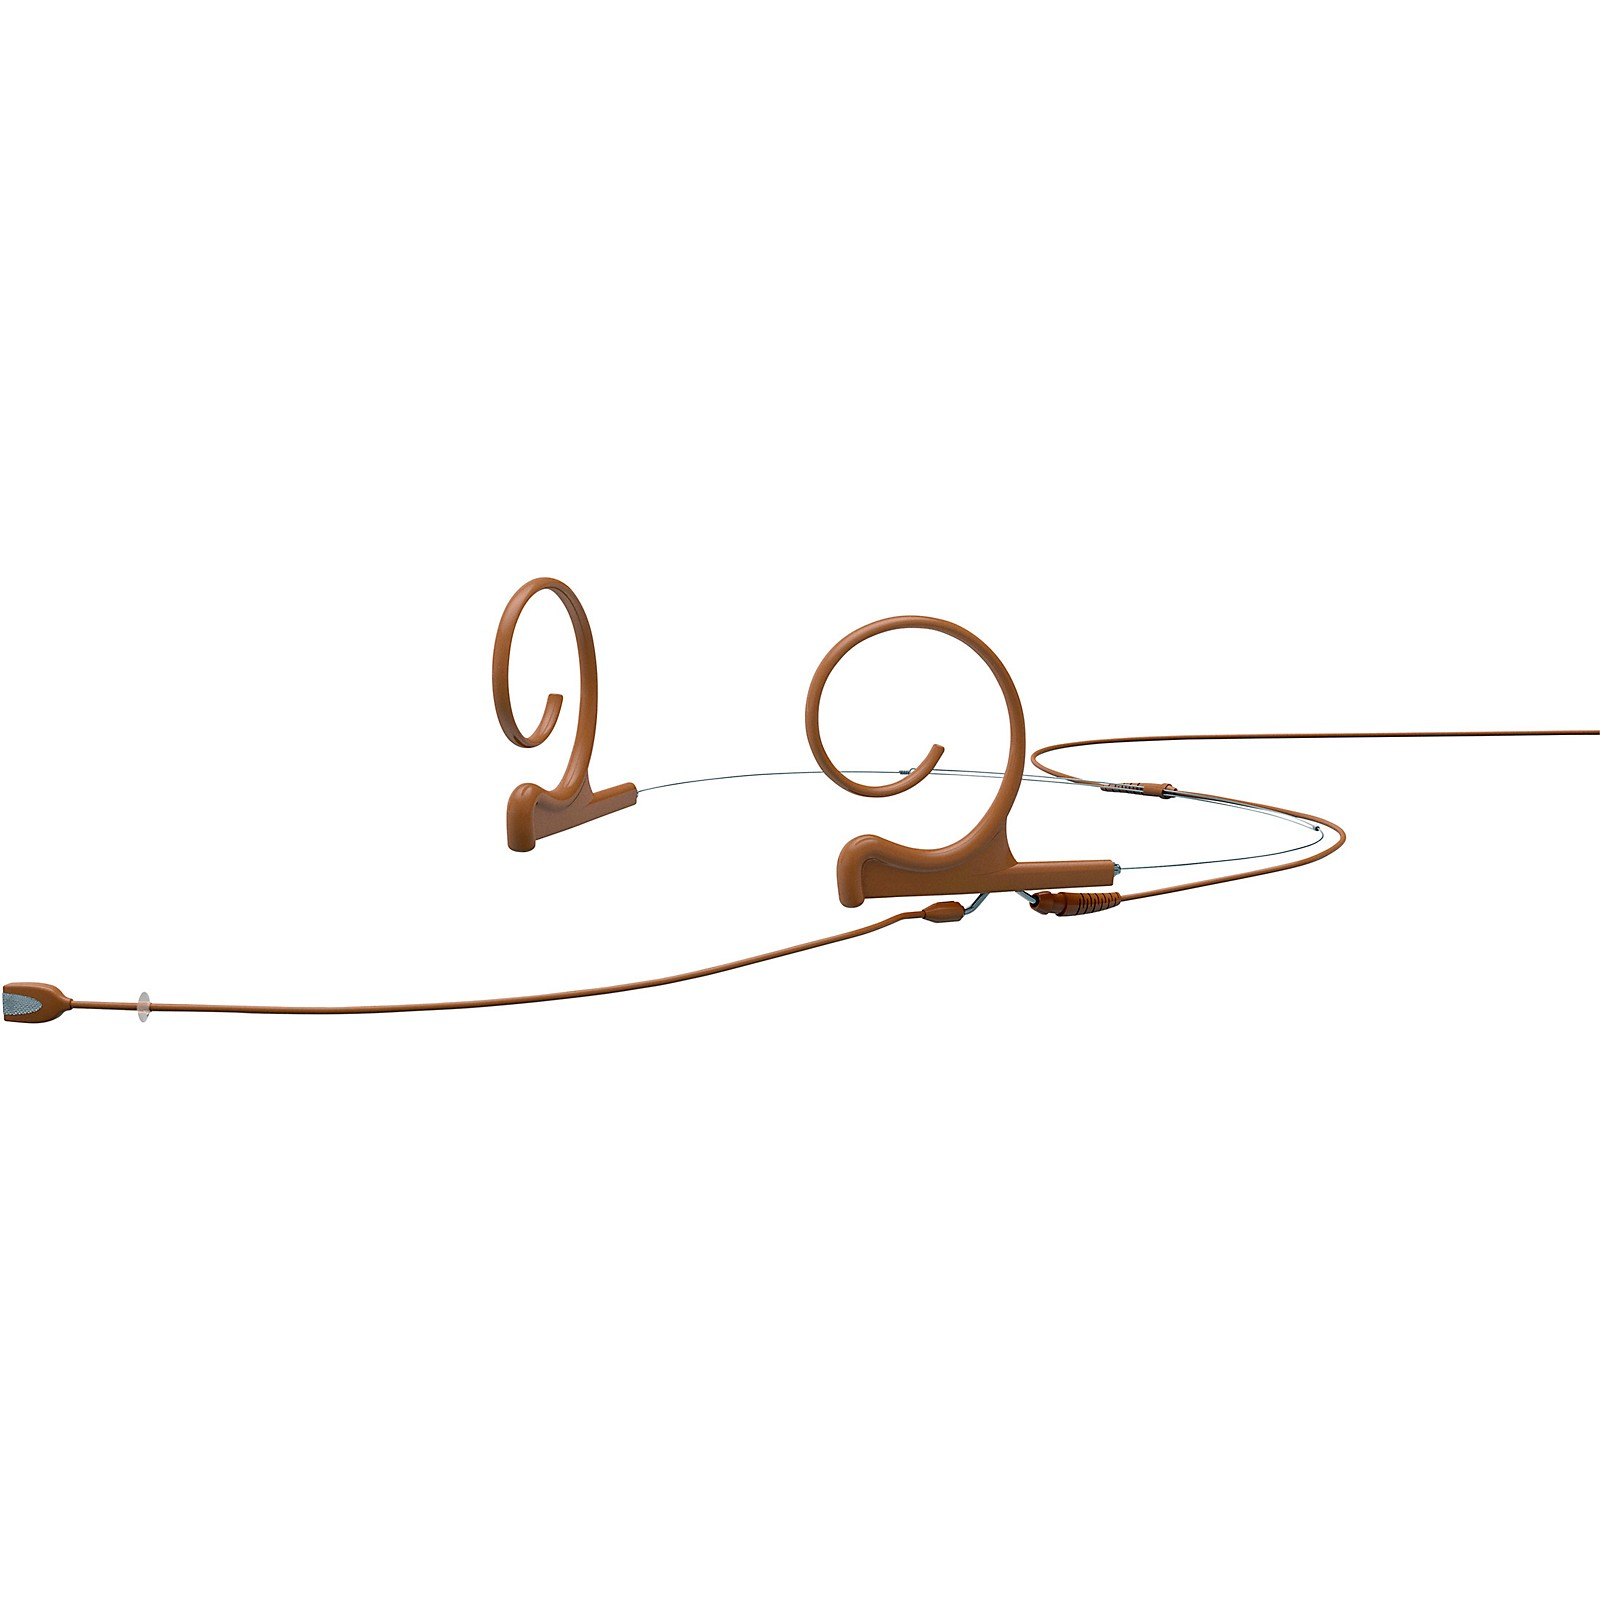 DPA Microphones d:fine FID Slim Directional Headset Microphone—Dual Ear, 120mm Boom, Brown